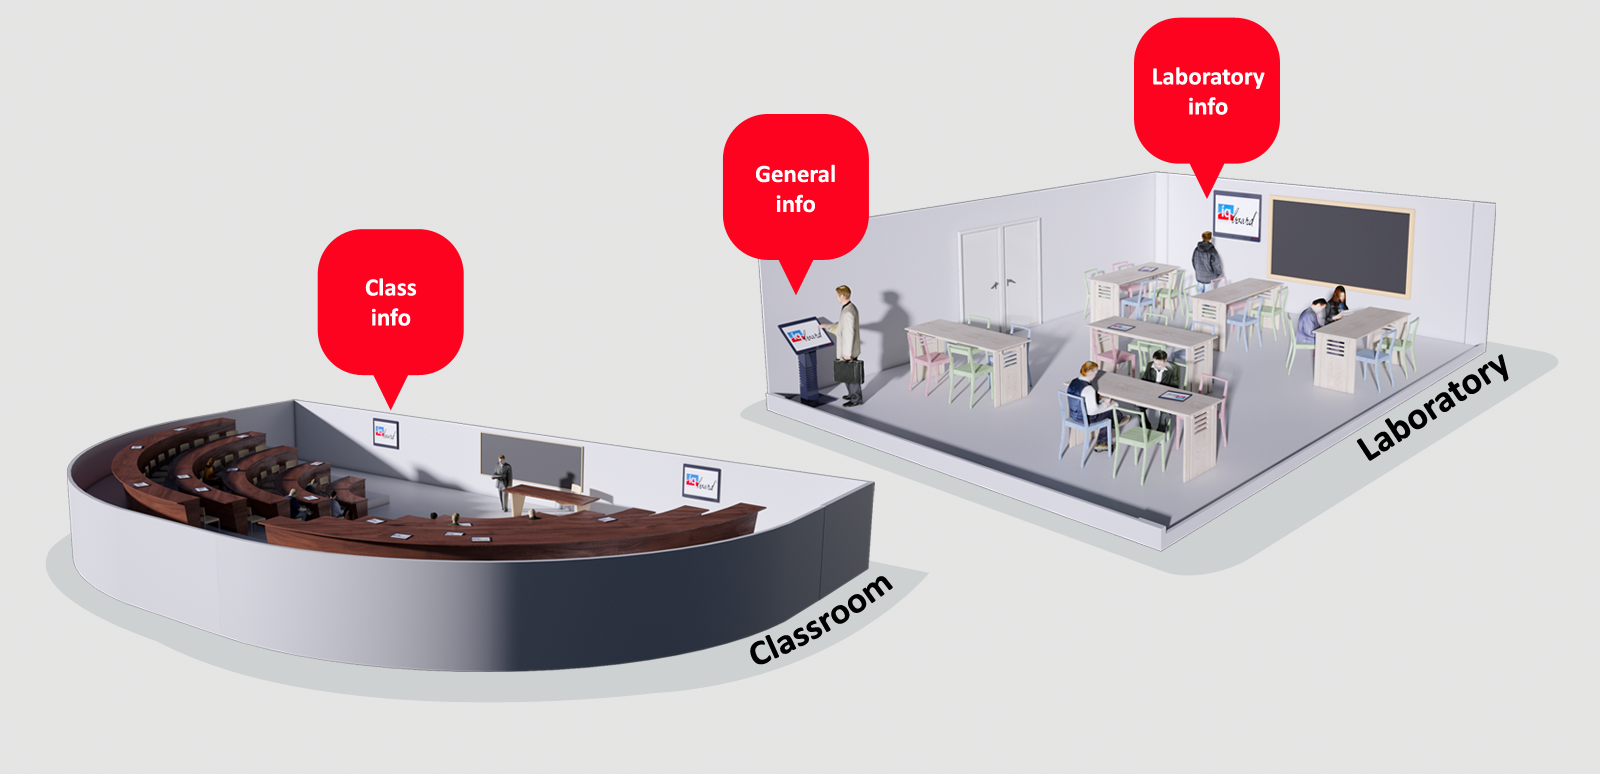 IQboard_Education_Classroom+Laboratory